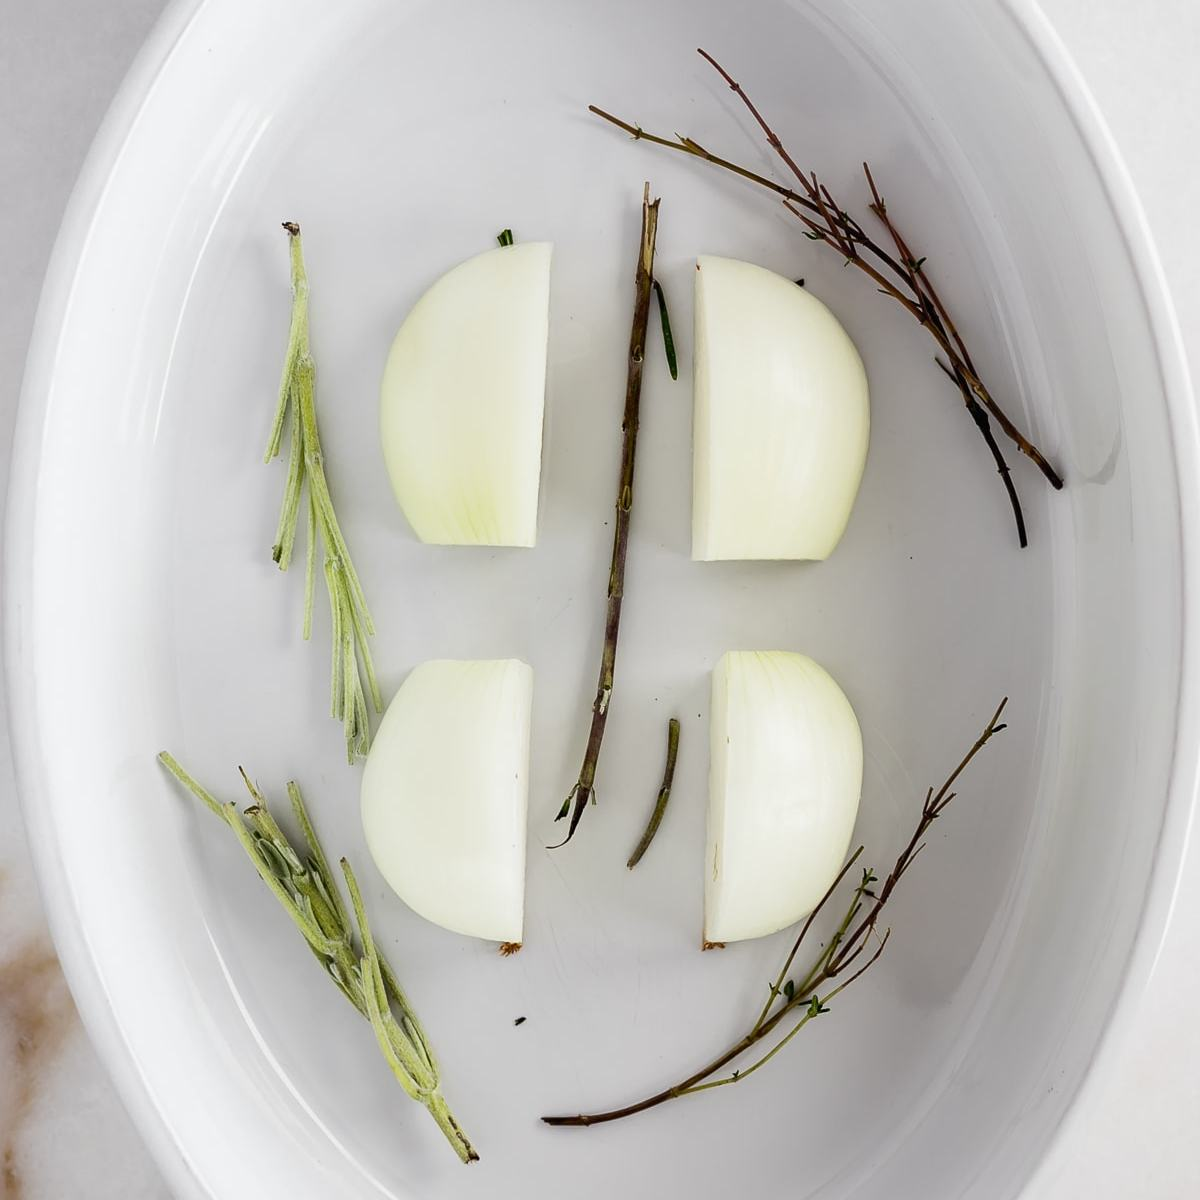 white baking dish with a quartered onion and herb stems in the bottom.